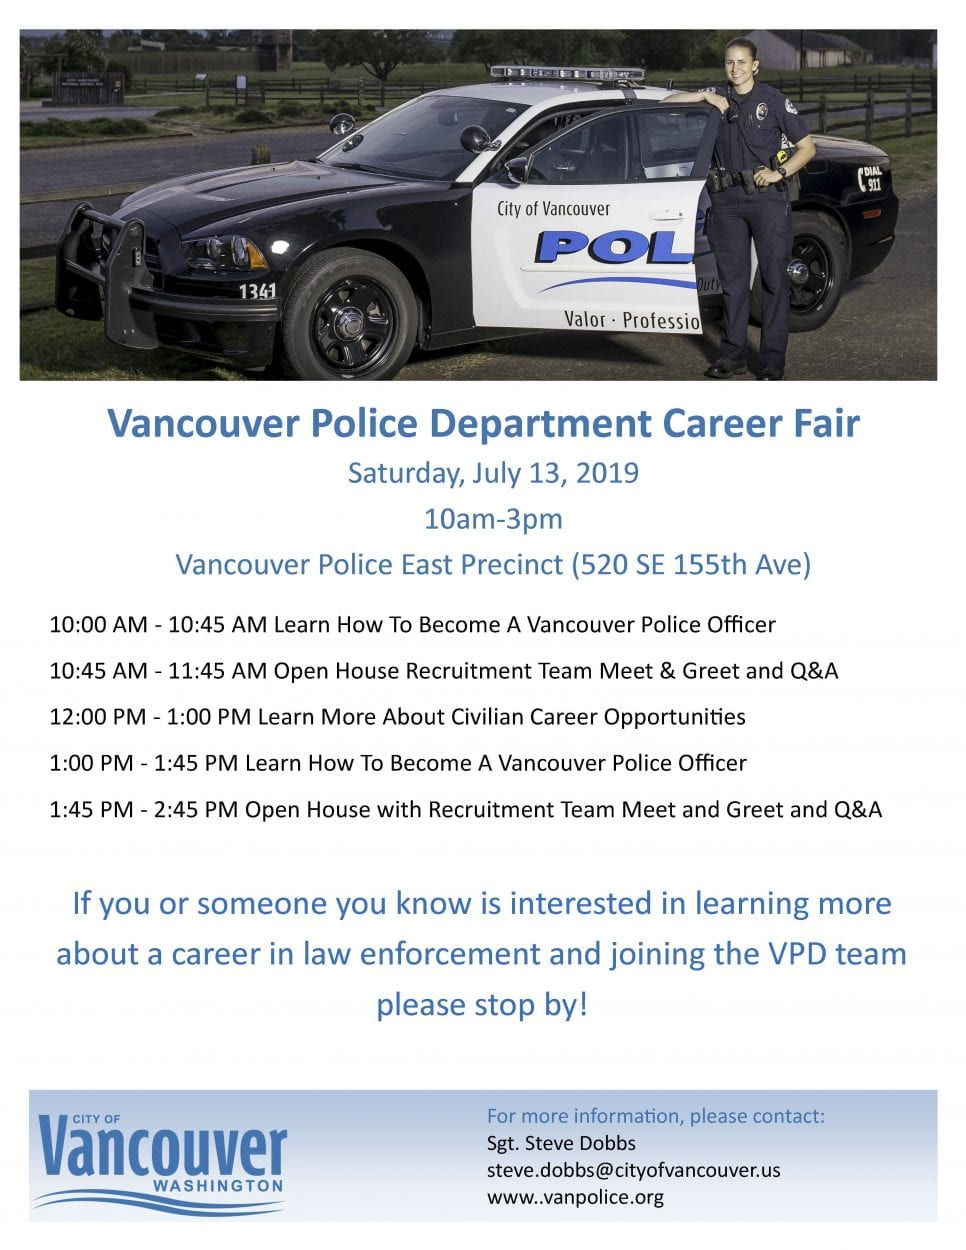 Vancouver Police Department hosting career fair